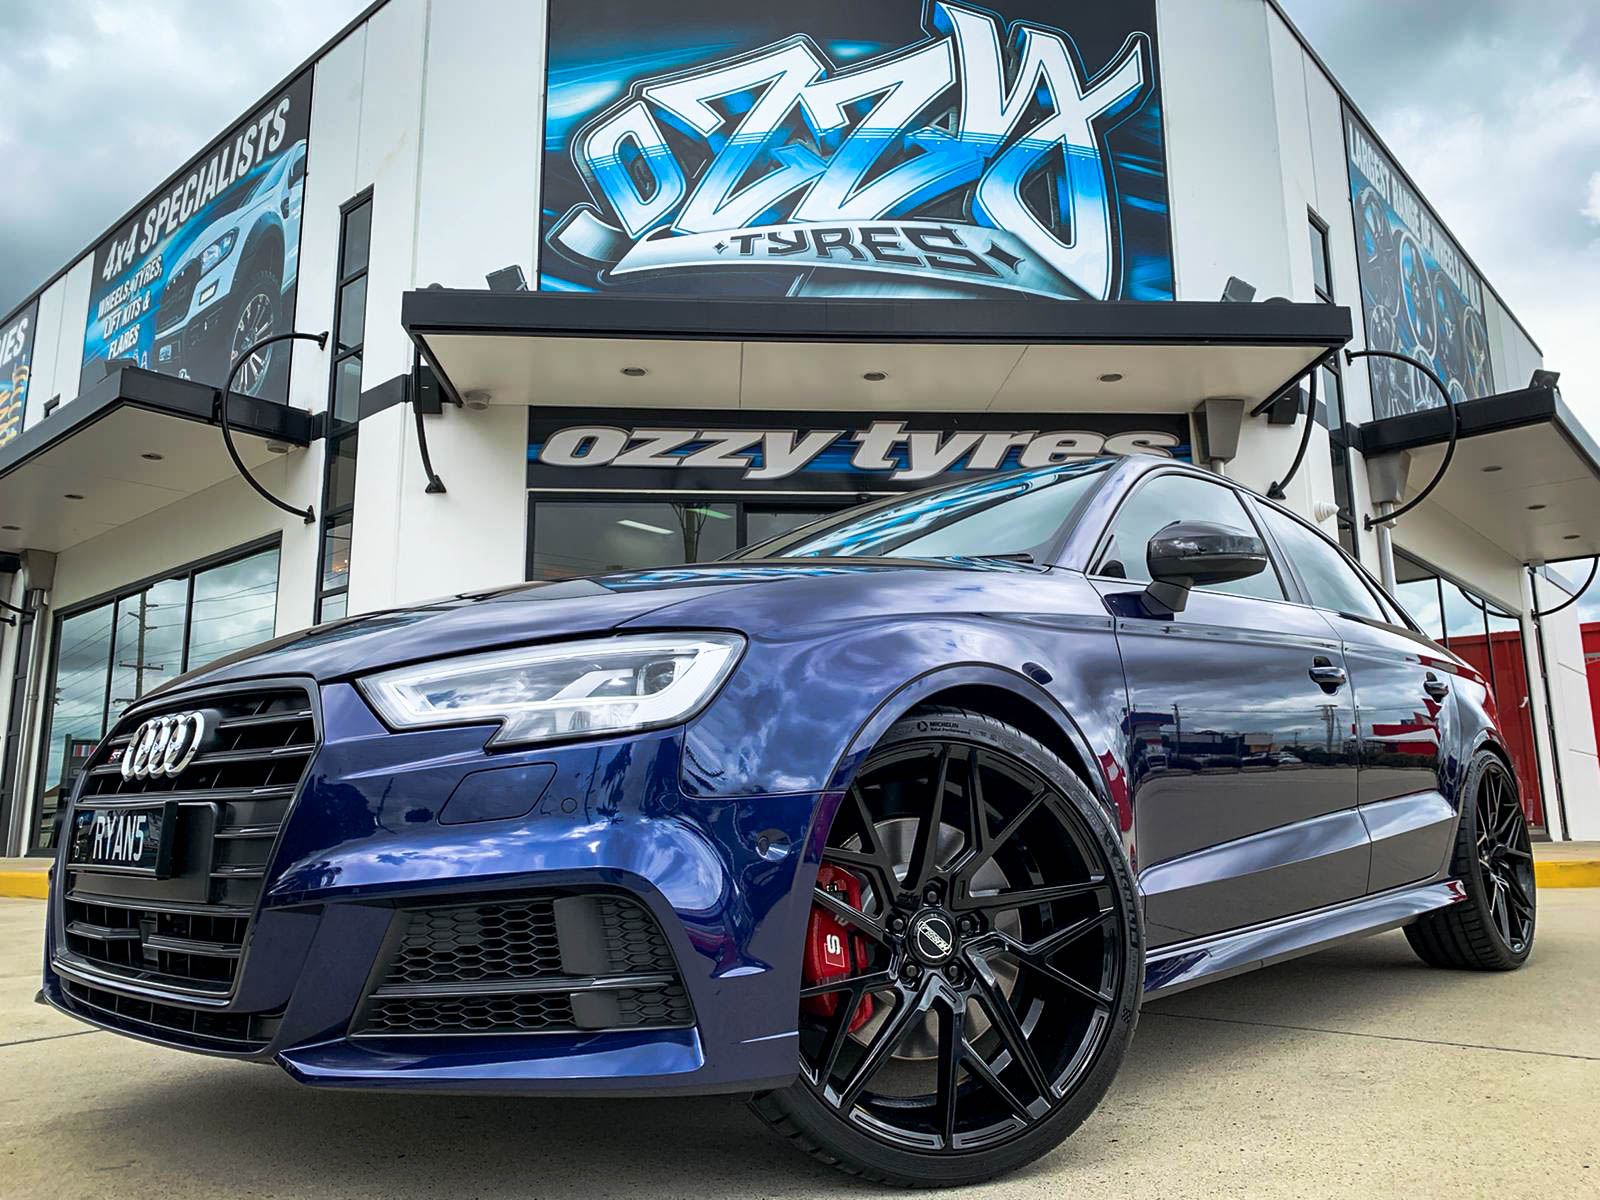 Audi s3 on hussla jacques gloss black 2 of 4